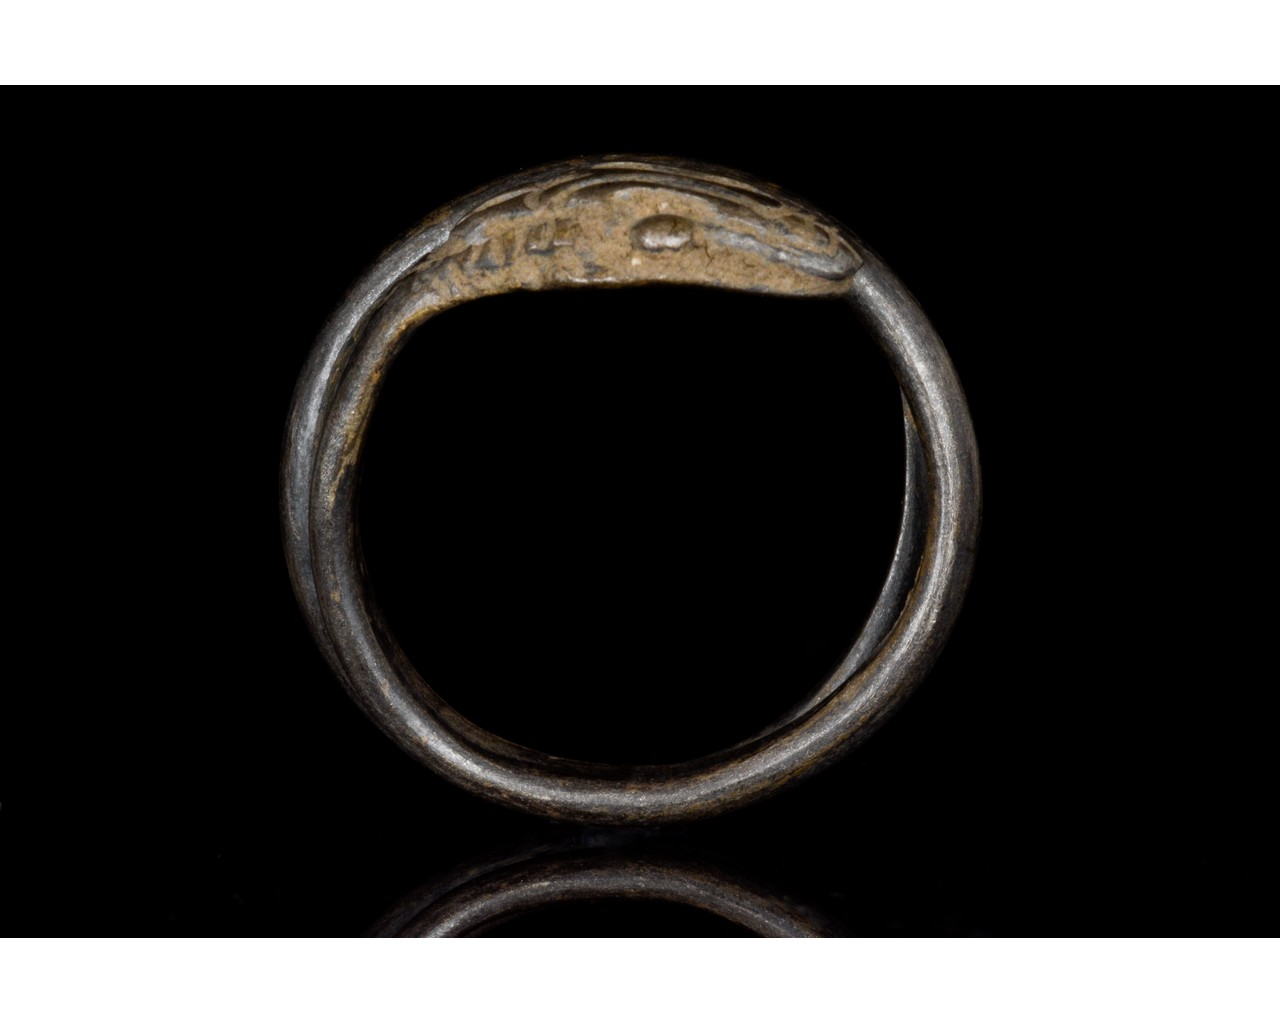 ROMANO-EGYPTIAN SILVER SNAKE RING - Image 5 of 5